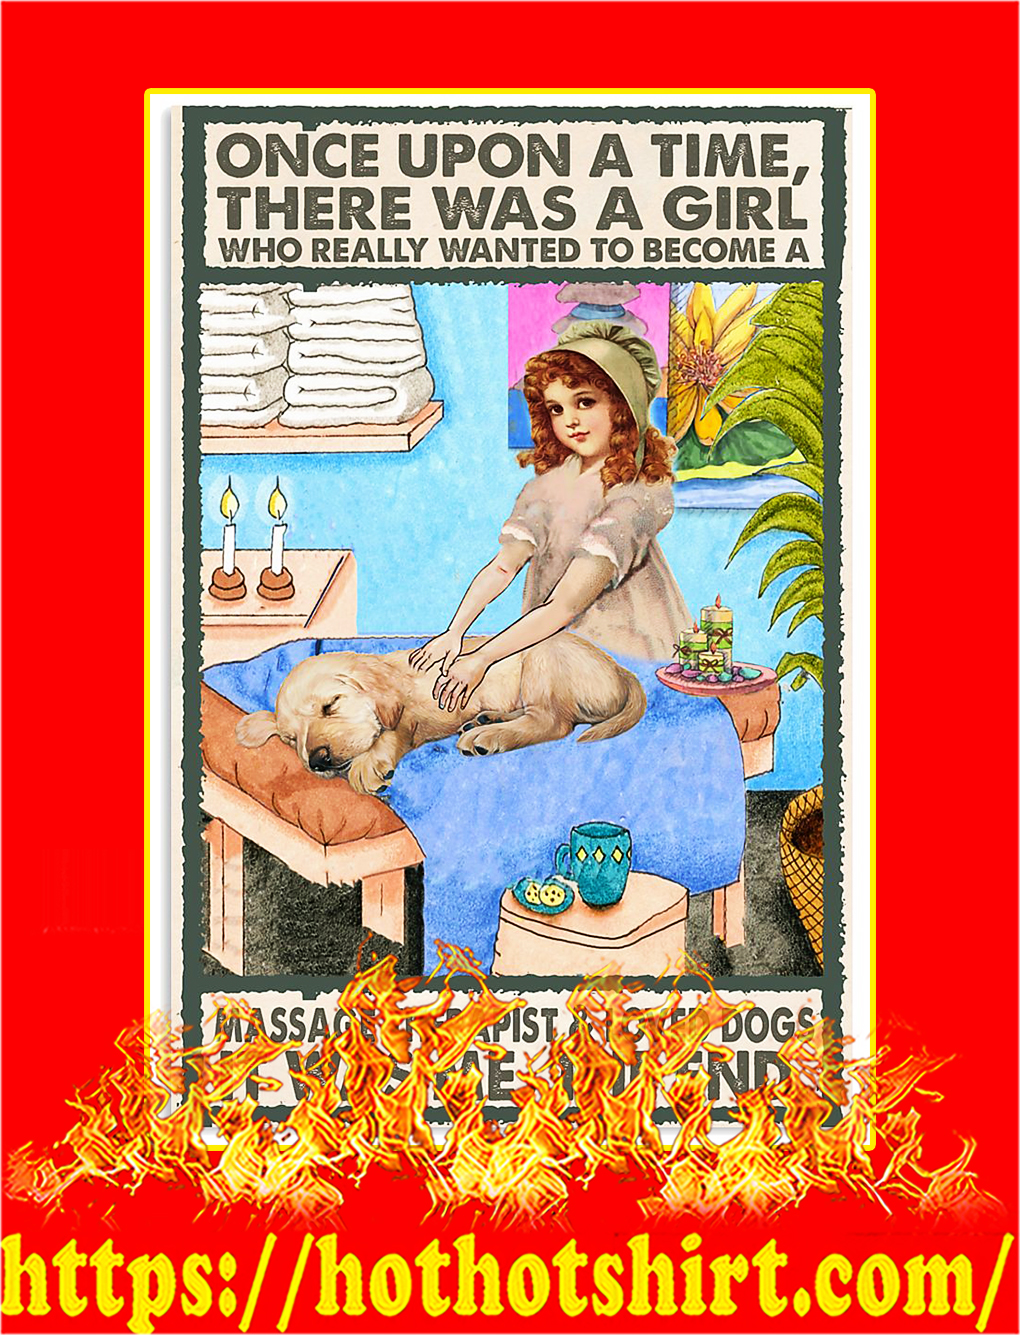 Once upon a time there was a girl who really wanted to become a massage therapist and loved dogs poster - A4